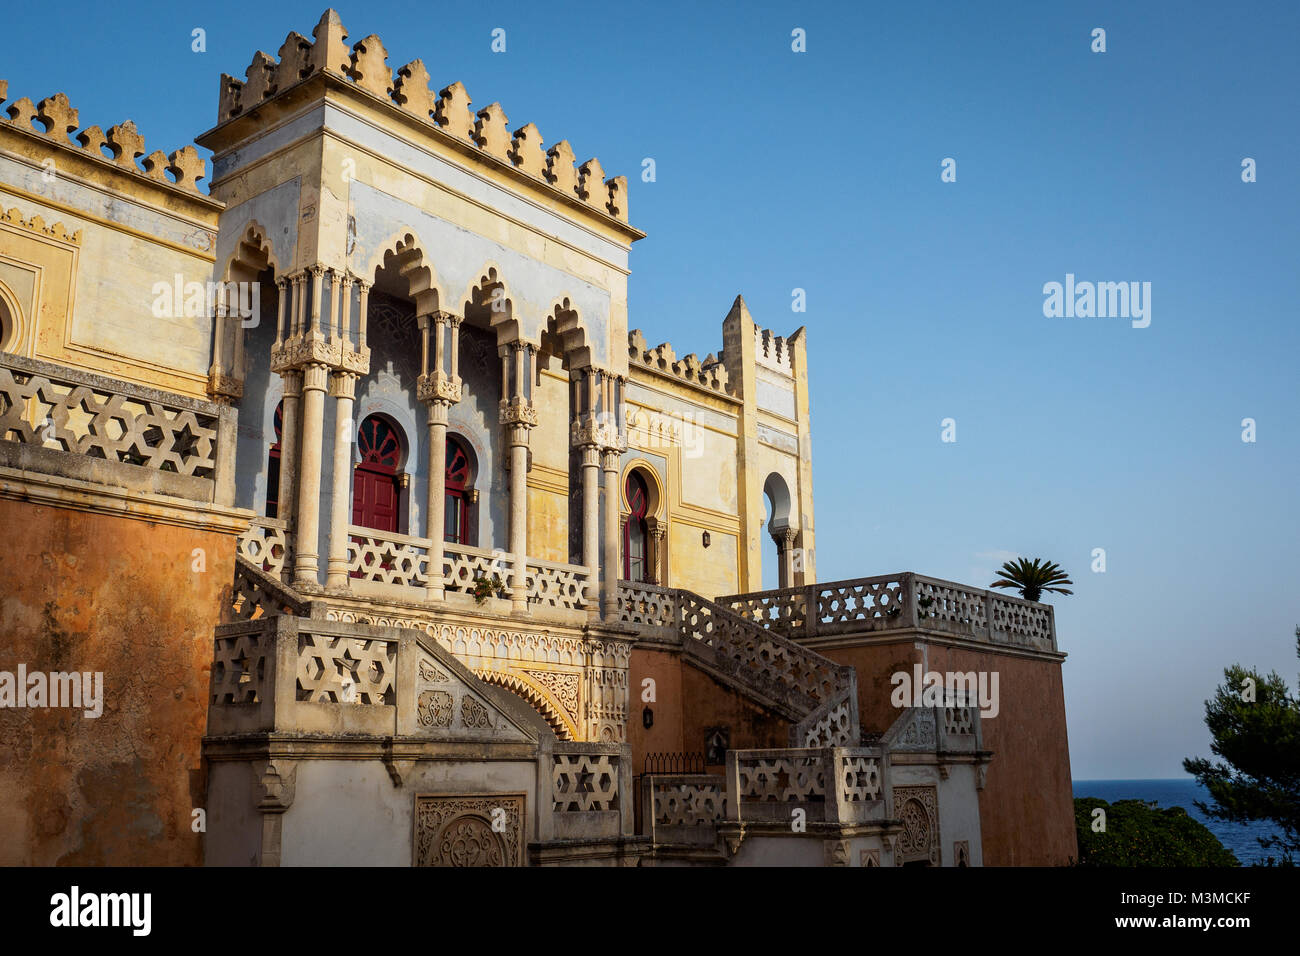 Santa Cesarea Terme (Italy), August 2017. Villa Sticchi, one of the best example of Moorish architectural style - Stock Image